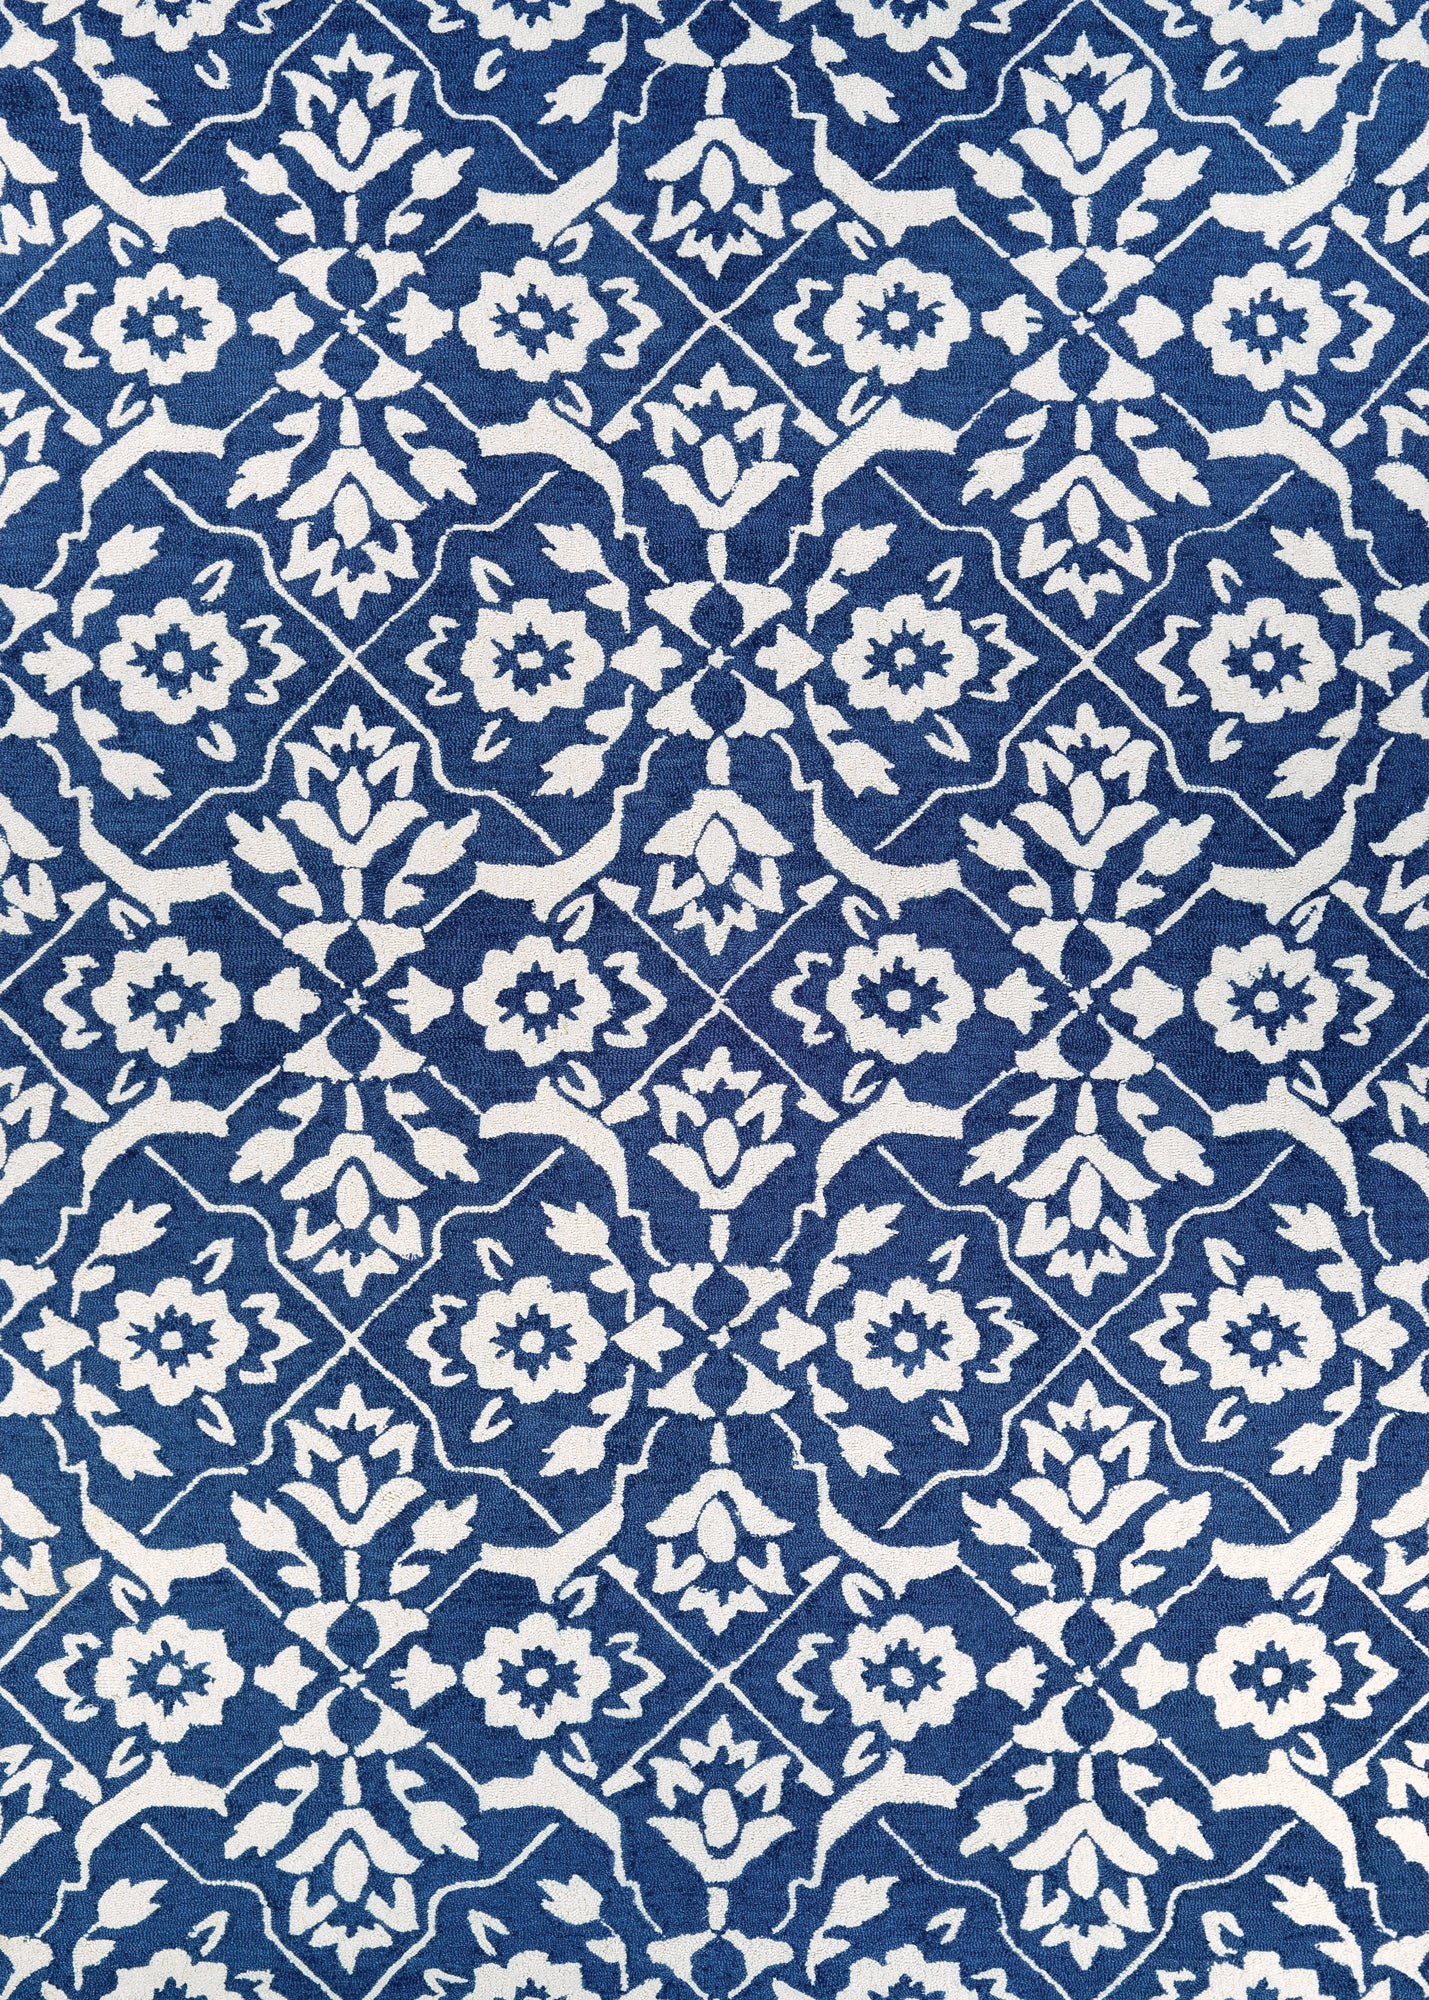 Couristan Crawford Tulip Lattice Blue/Ivory Area Rug main image